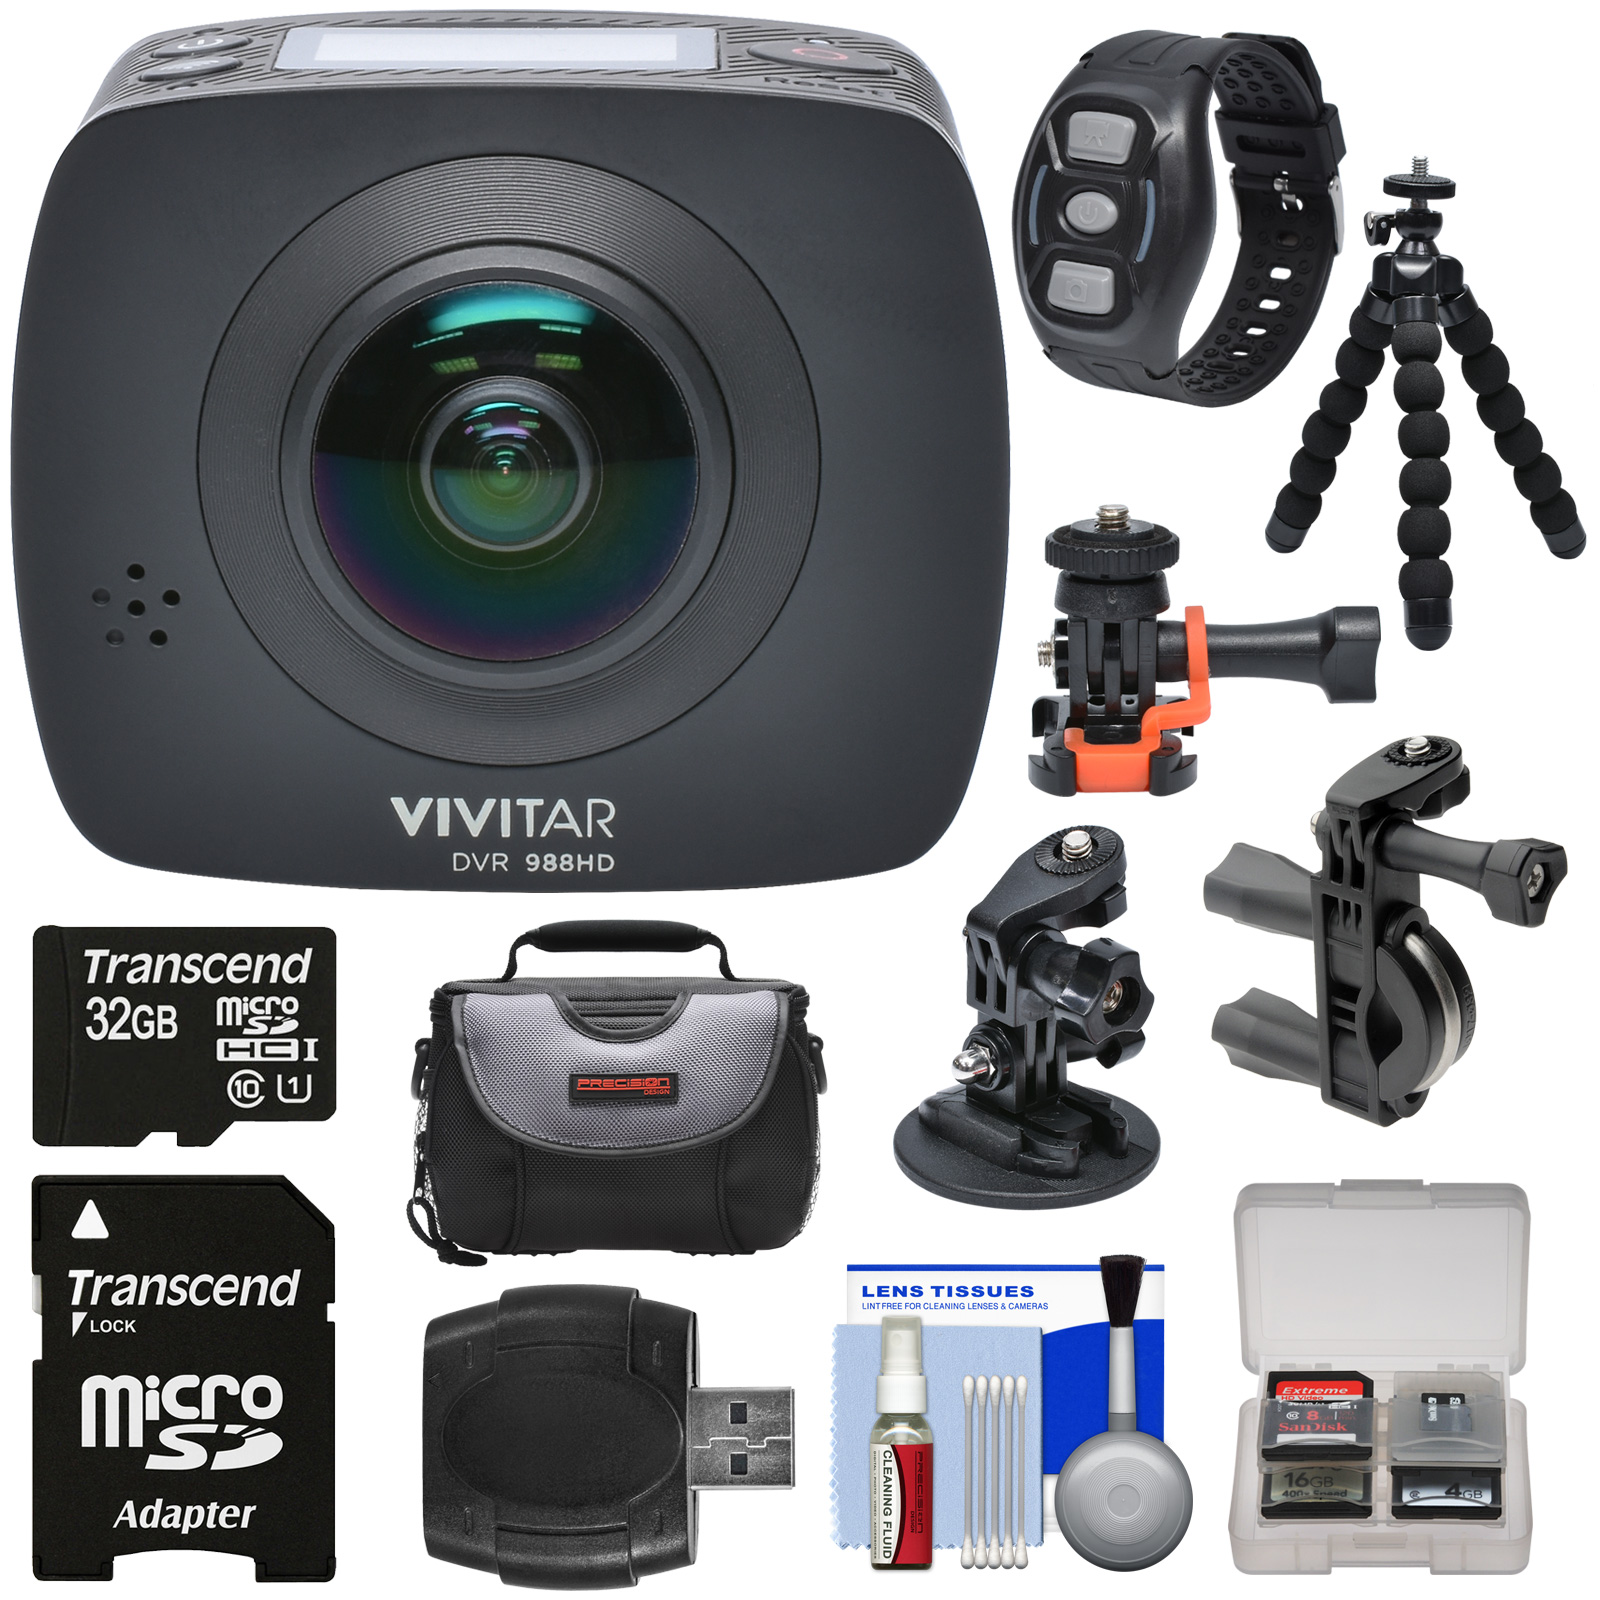 Vivitar DVR988HD 360 VR Wi-Fi Action Video Camera Camcord...